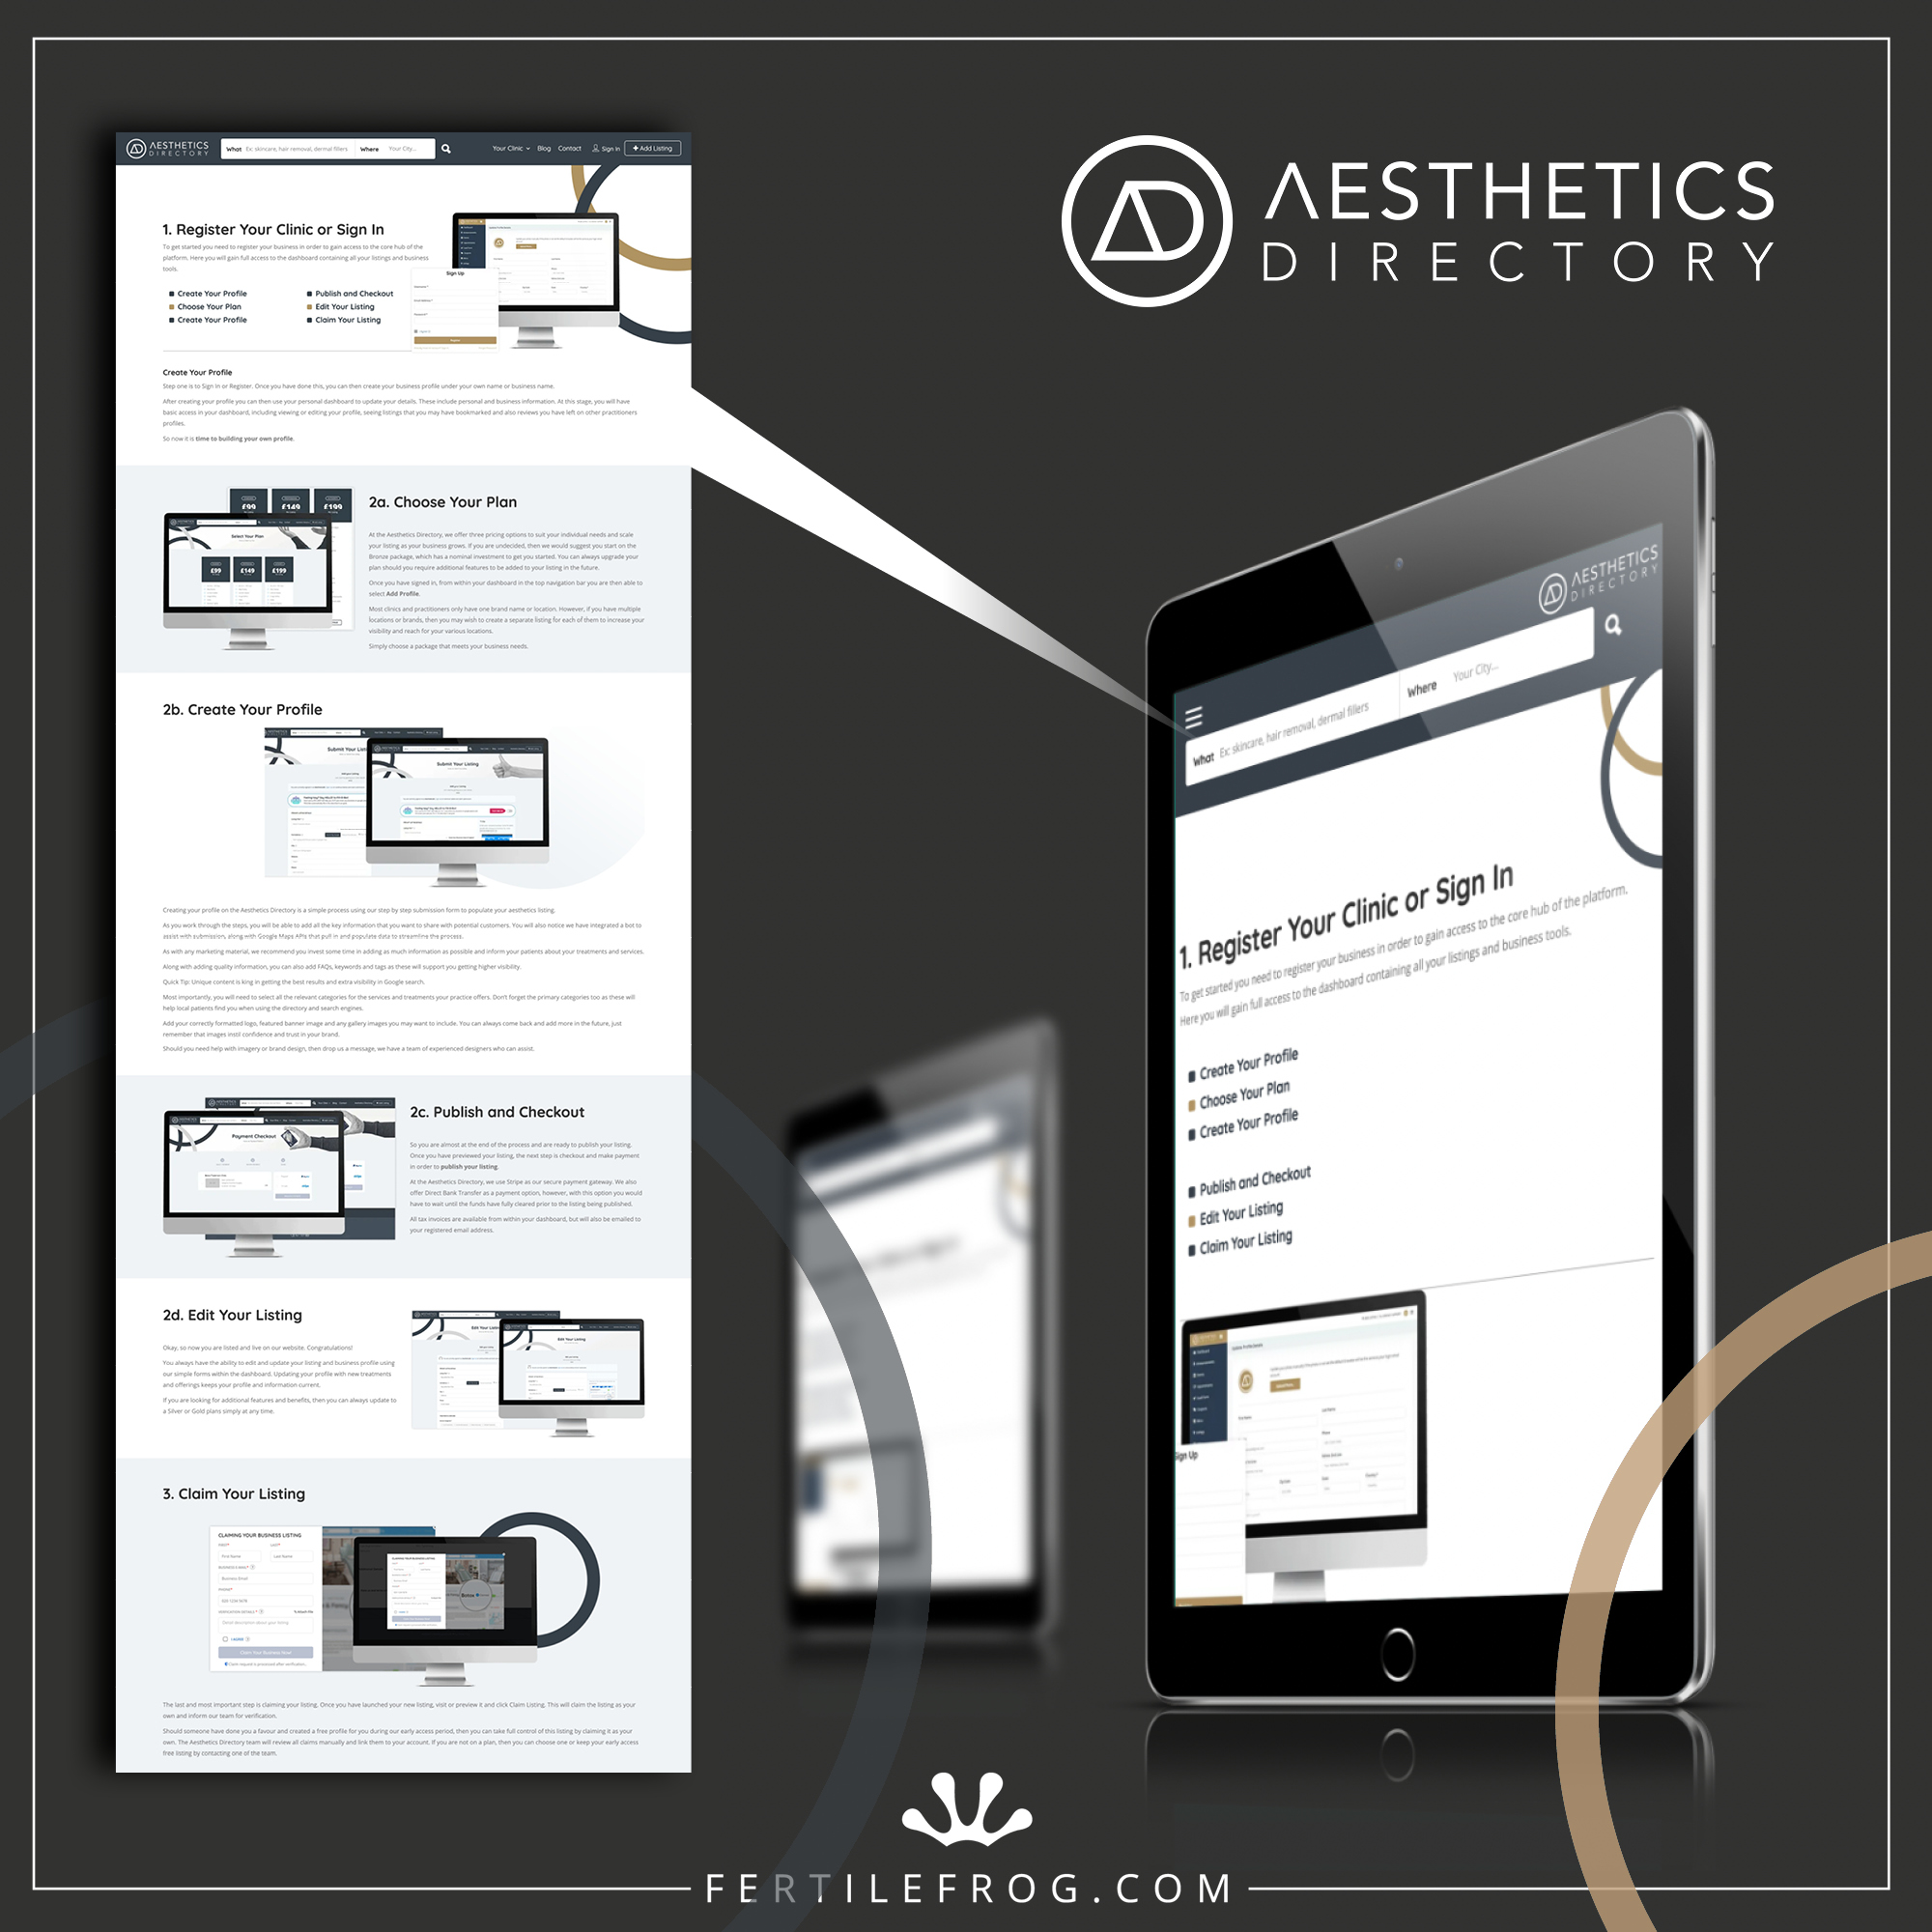 Graphic showing a screenshot of the Aesthetics Directory features and getting started page